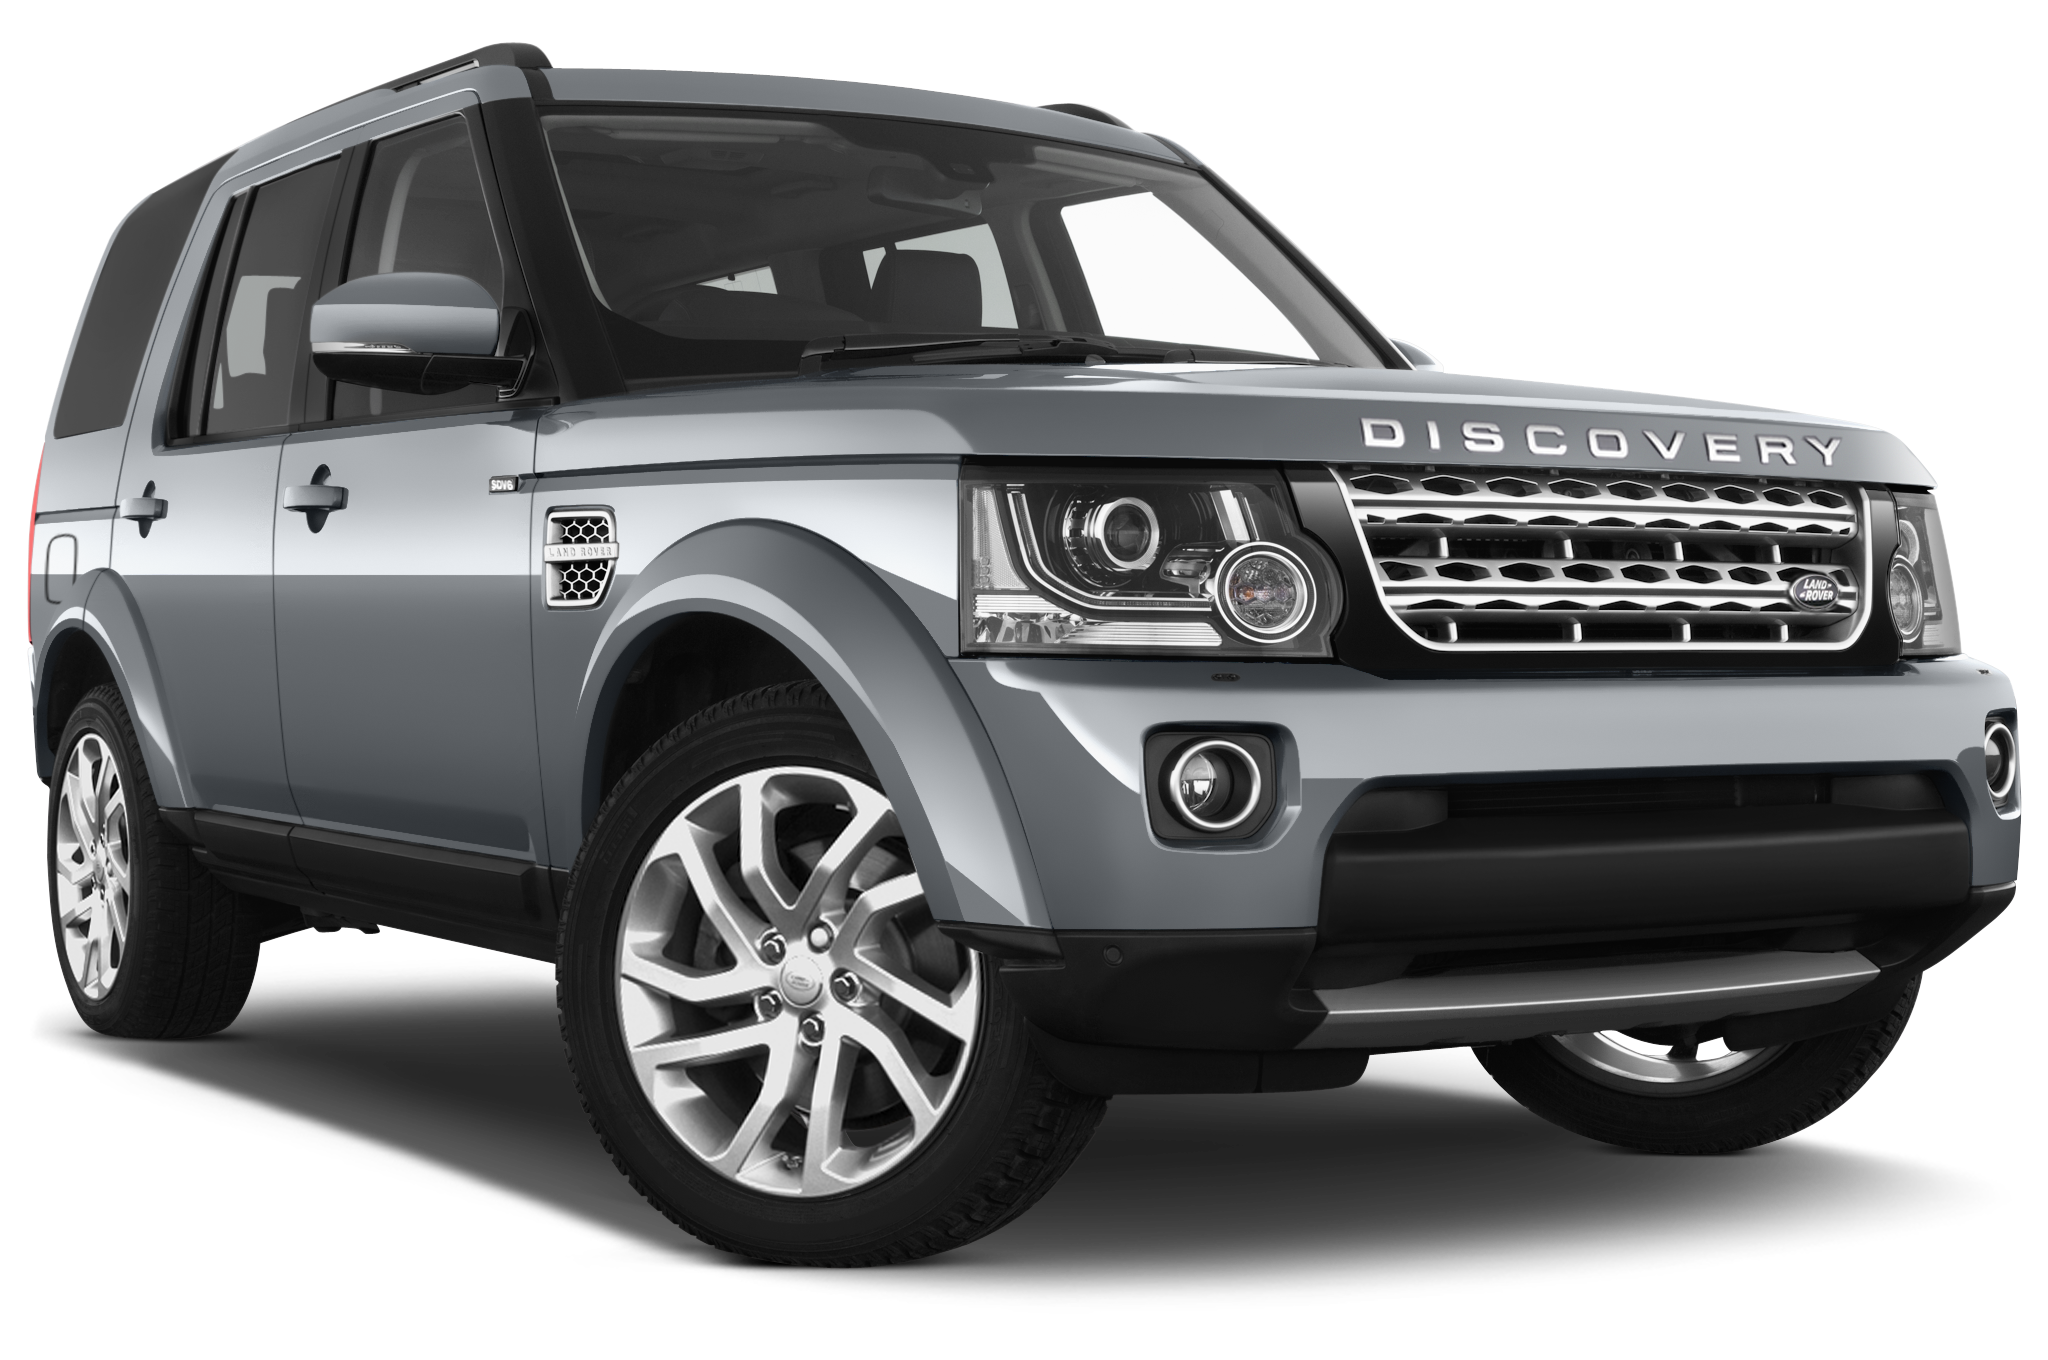 Land Rover Discovery front view